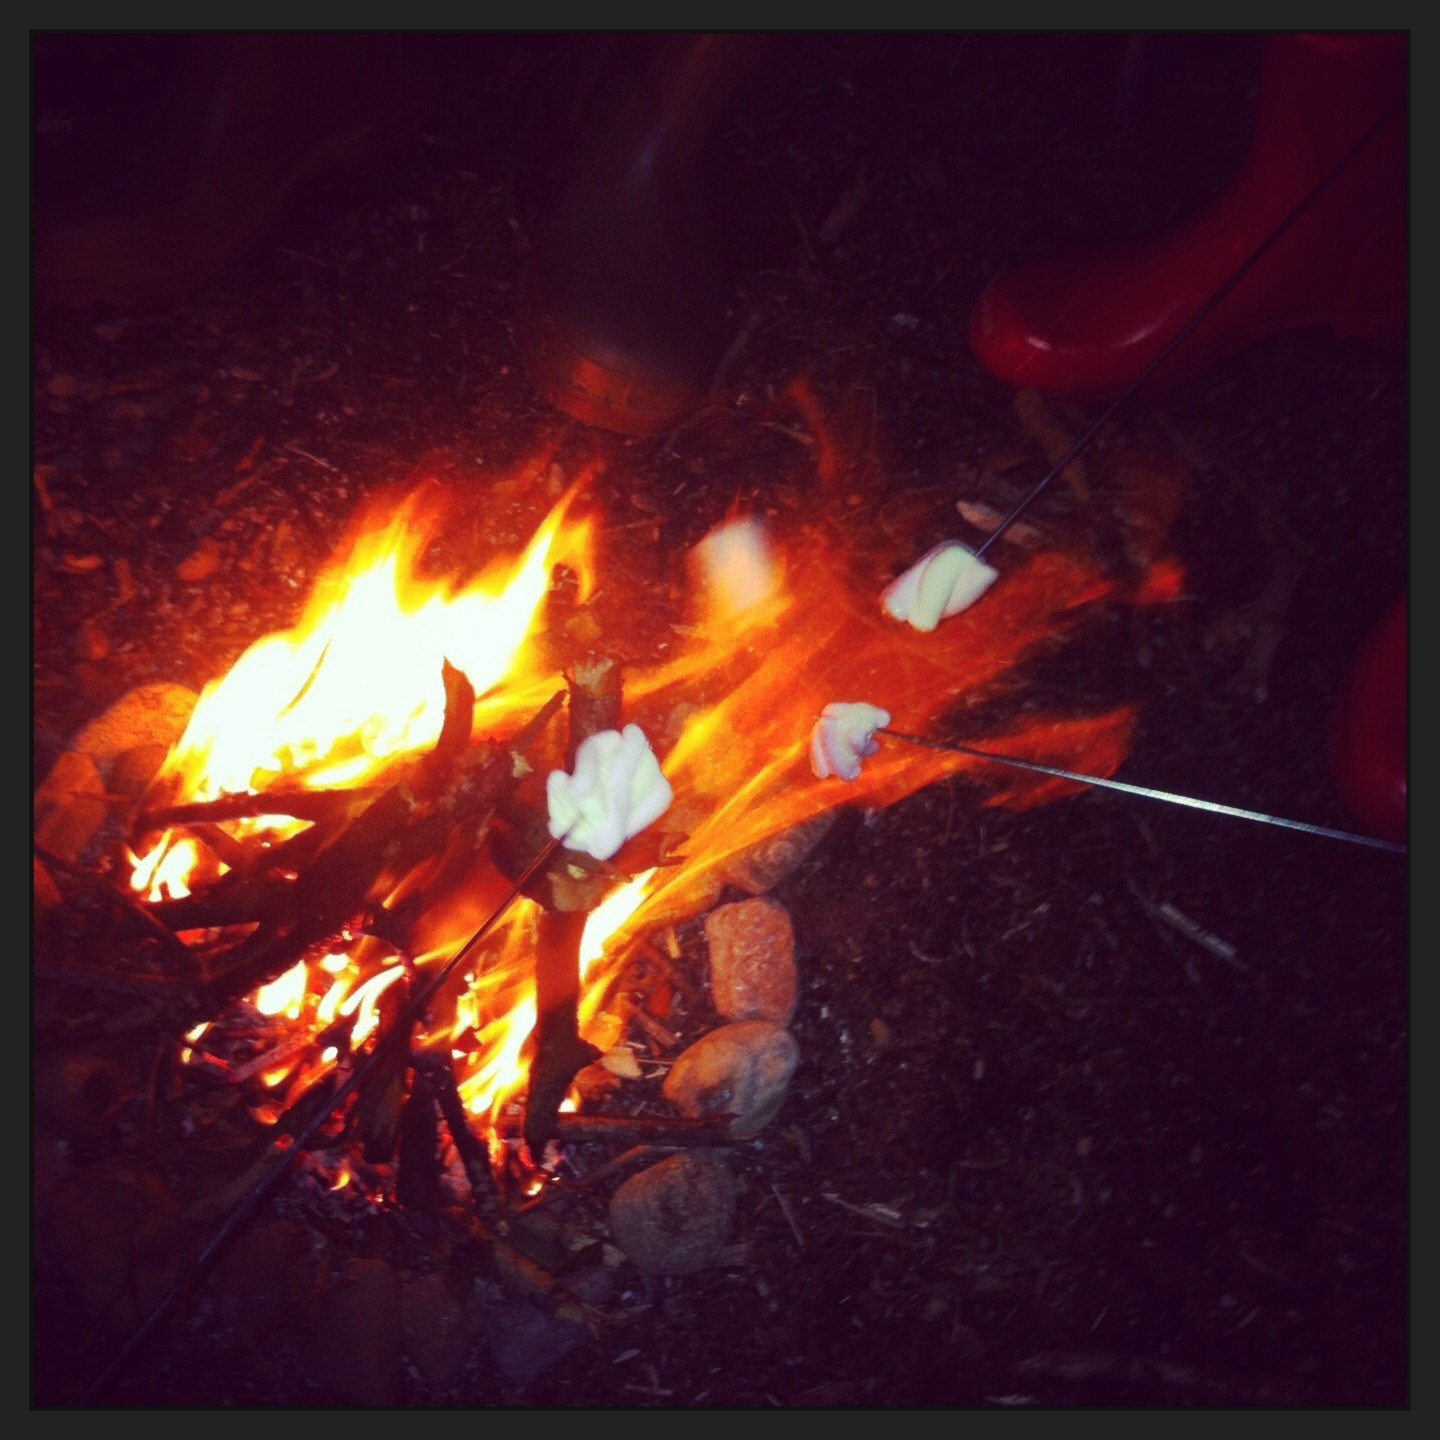 The wonderful memories, us 4 toasting marshmallows round the fire at the log cabin xx